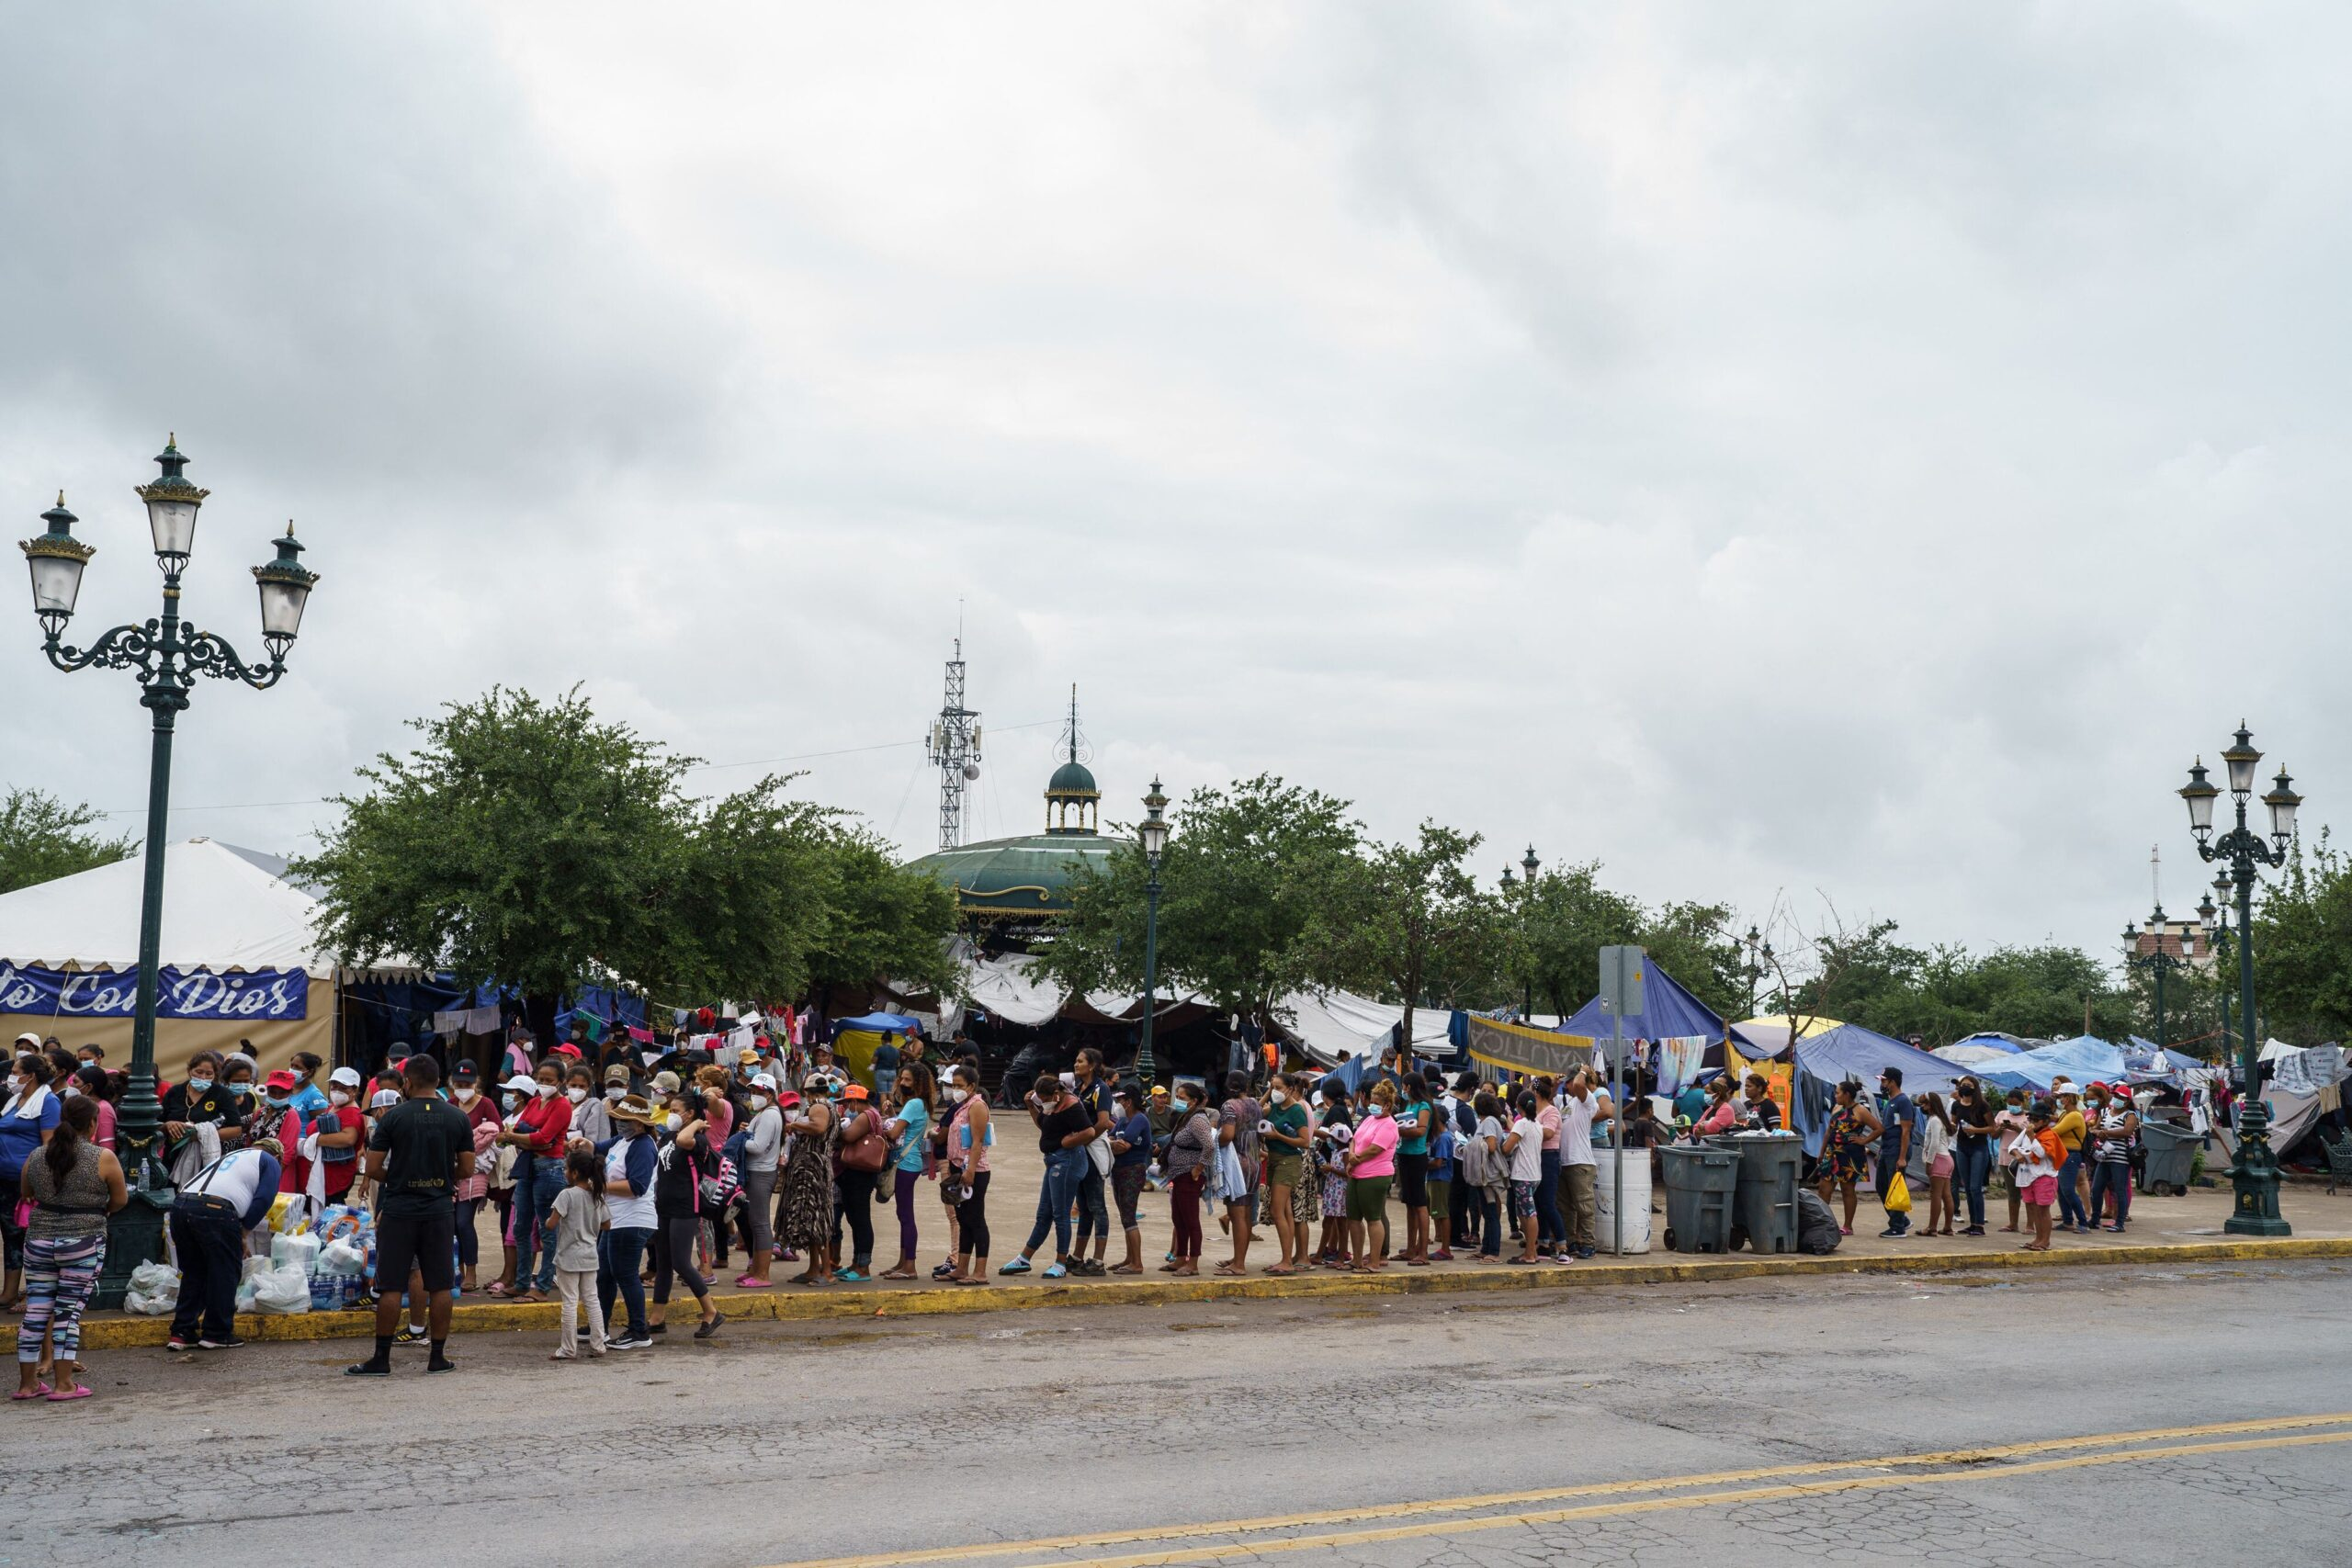 <i>Paul  Ratje/AFP/Getty Images</i><br/>Migrants who were sent back to Mexico under Title 42 wait in line for food and supplies in a camp across the US-Mexico border in Reynosa